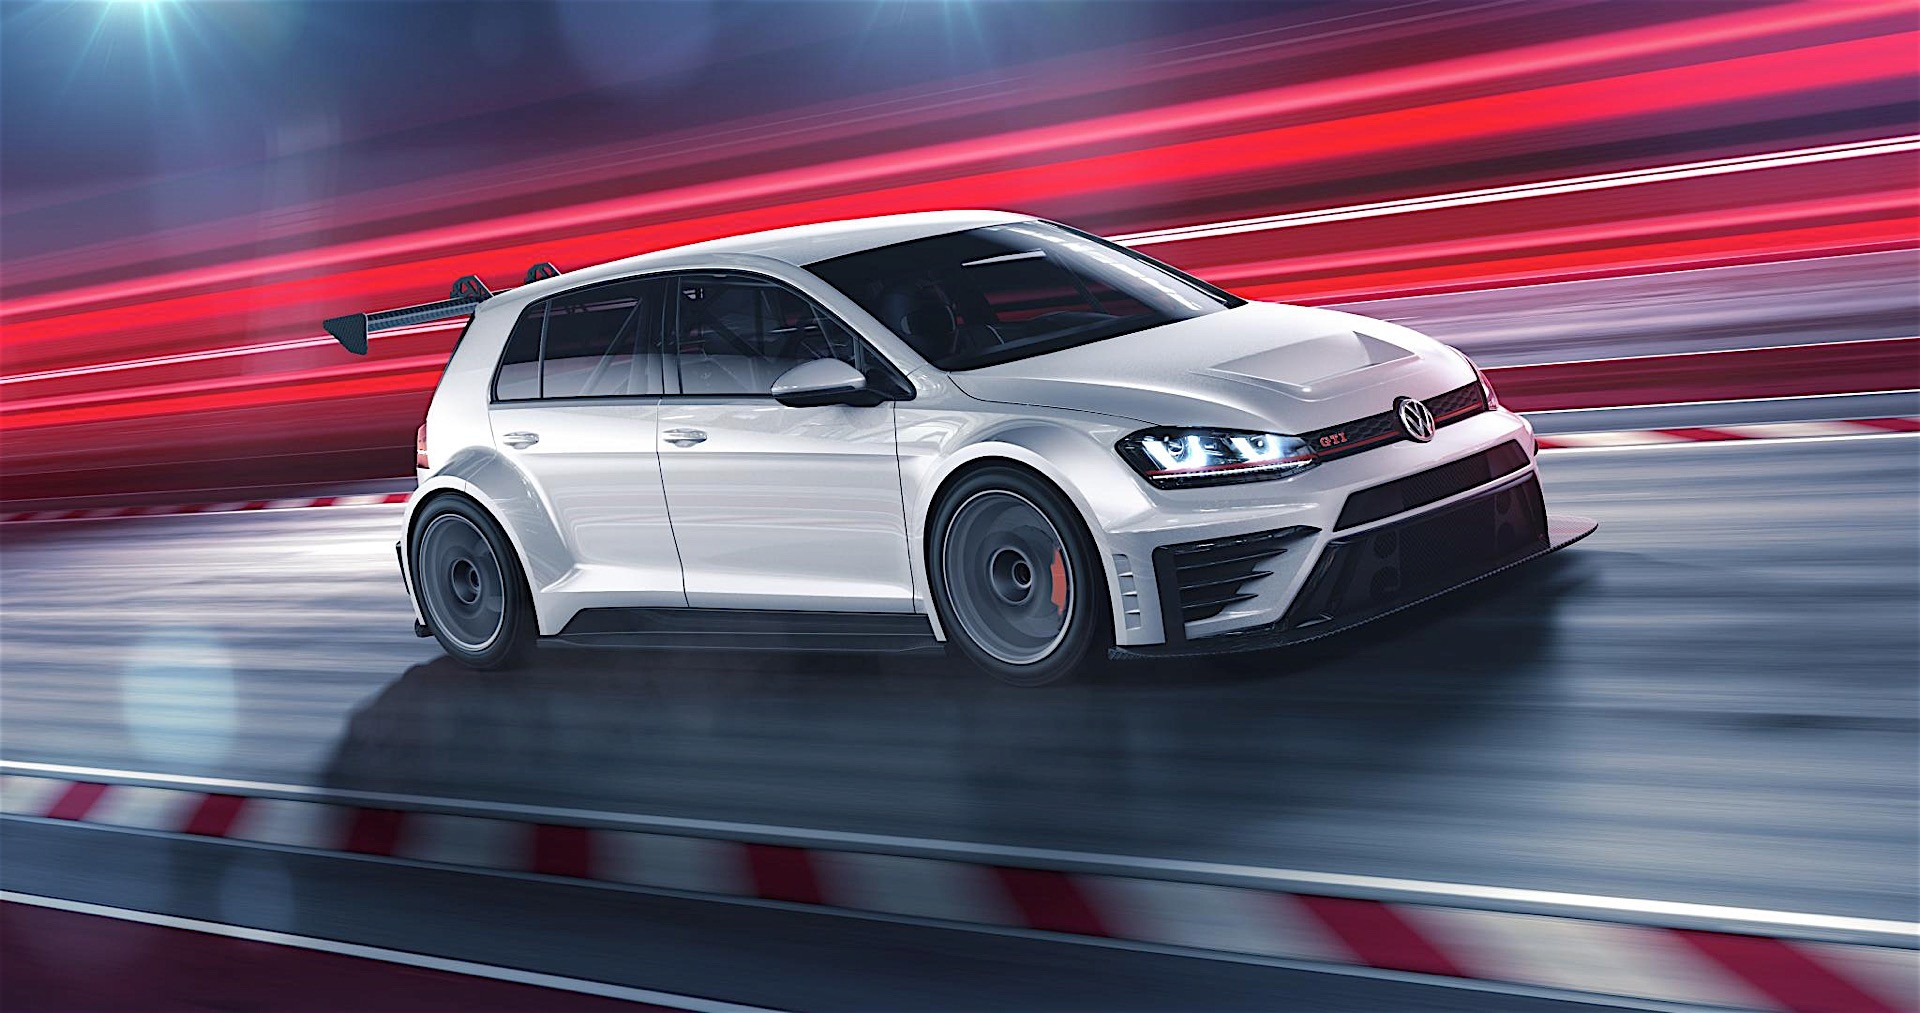 Volkswagen Golf GTI TCR 330 HP for the Racing Version of the GTI